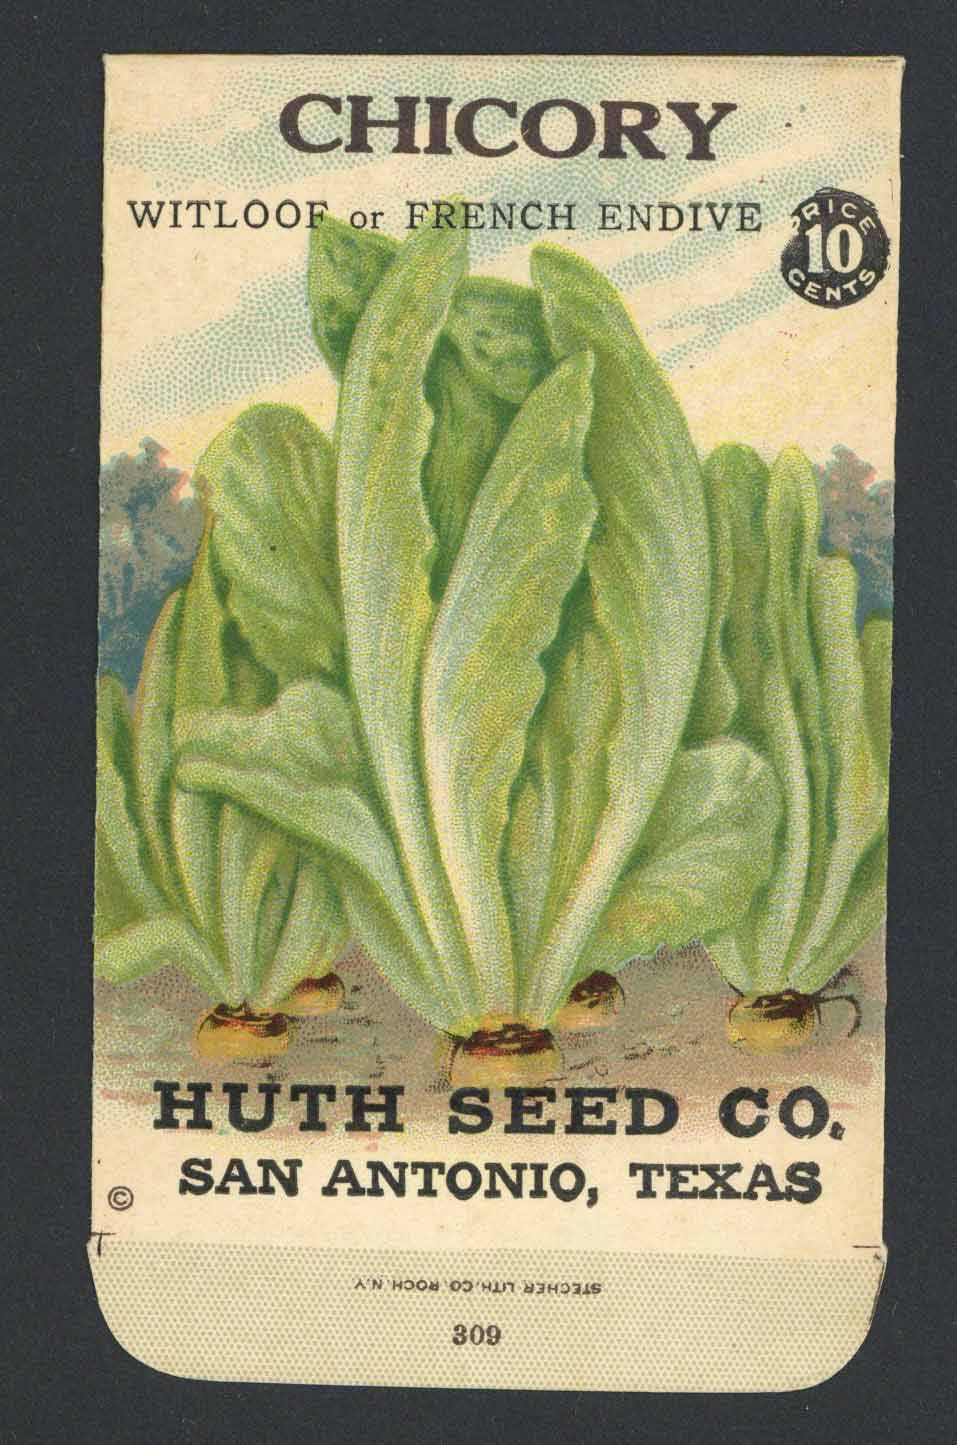 Chicory Antique Huth Seed Co. Packet